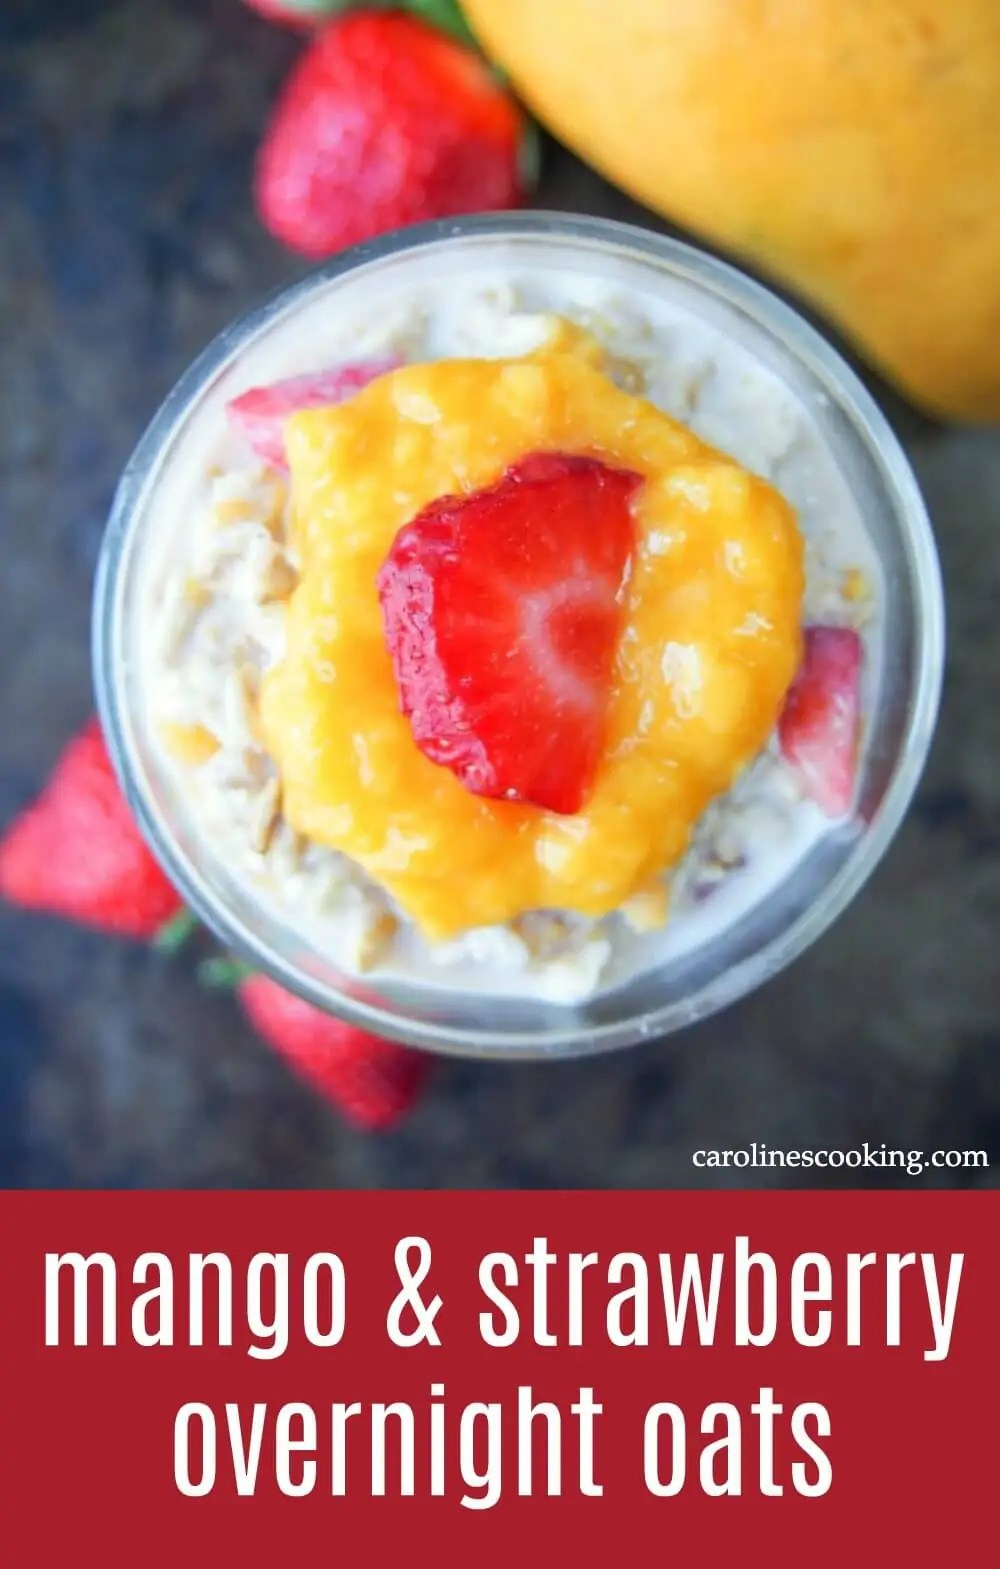 This mango and strawberry overnight oats is the perfect light breakfast for warmer weather. Deliciously smooth, creamy, fresh & fruity. And so easy to make! #mango #oats #overnightoats #breakfast